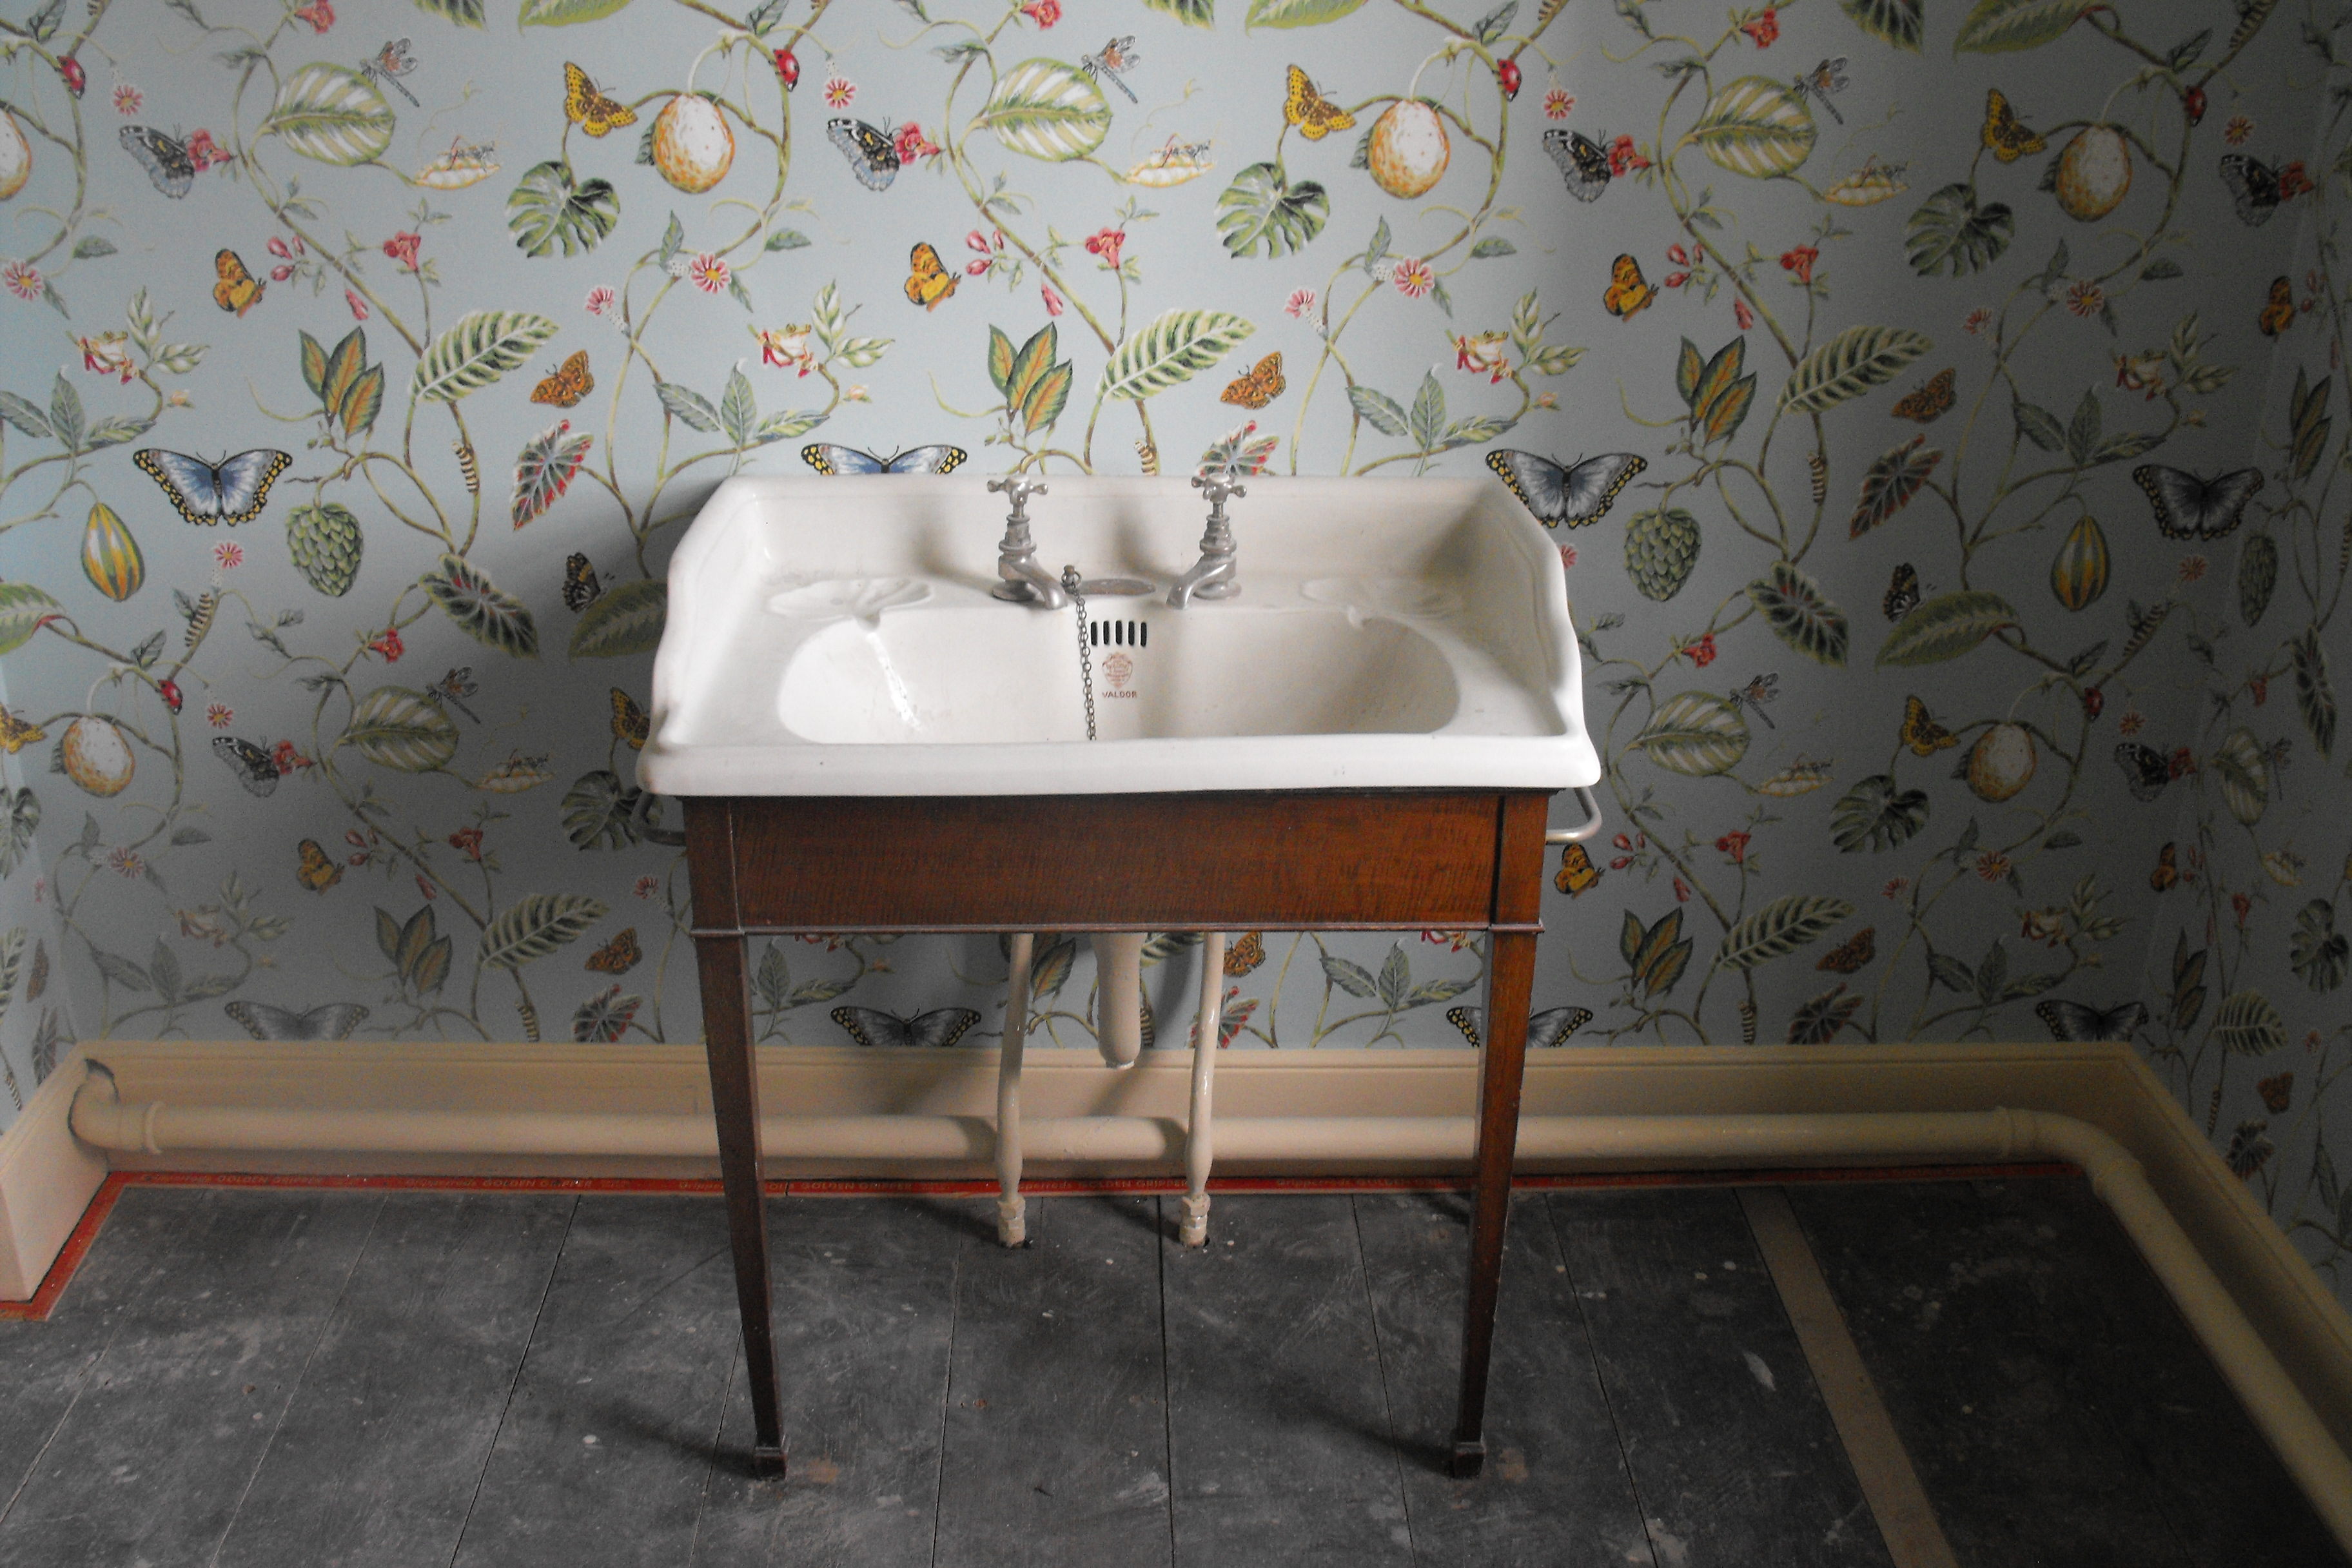 Old Sink : we were asked to restore some old antique sinks in an old property ...